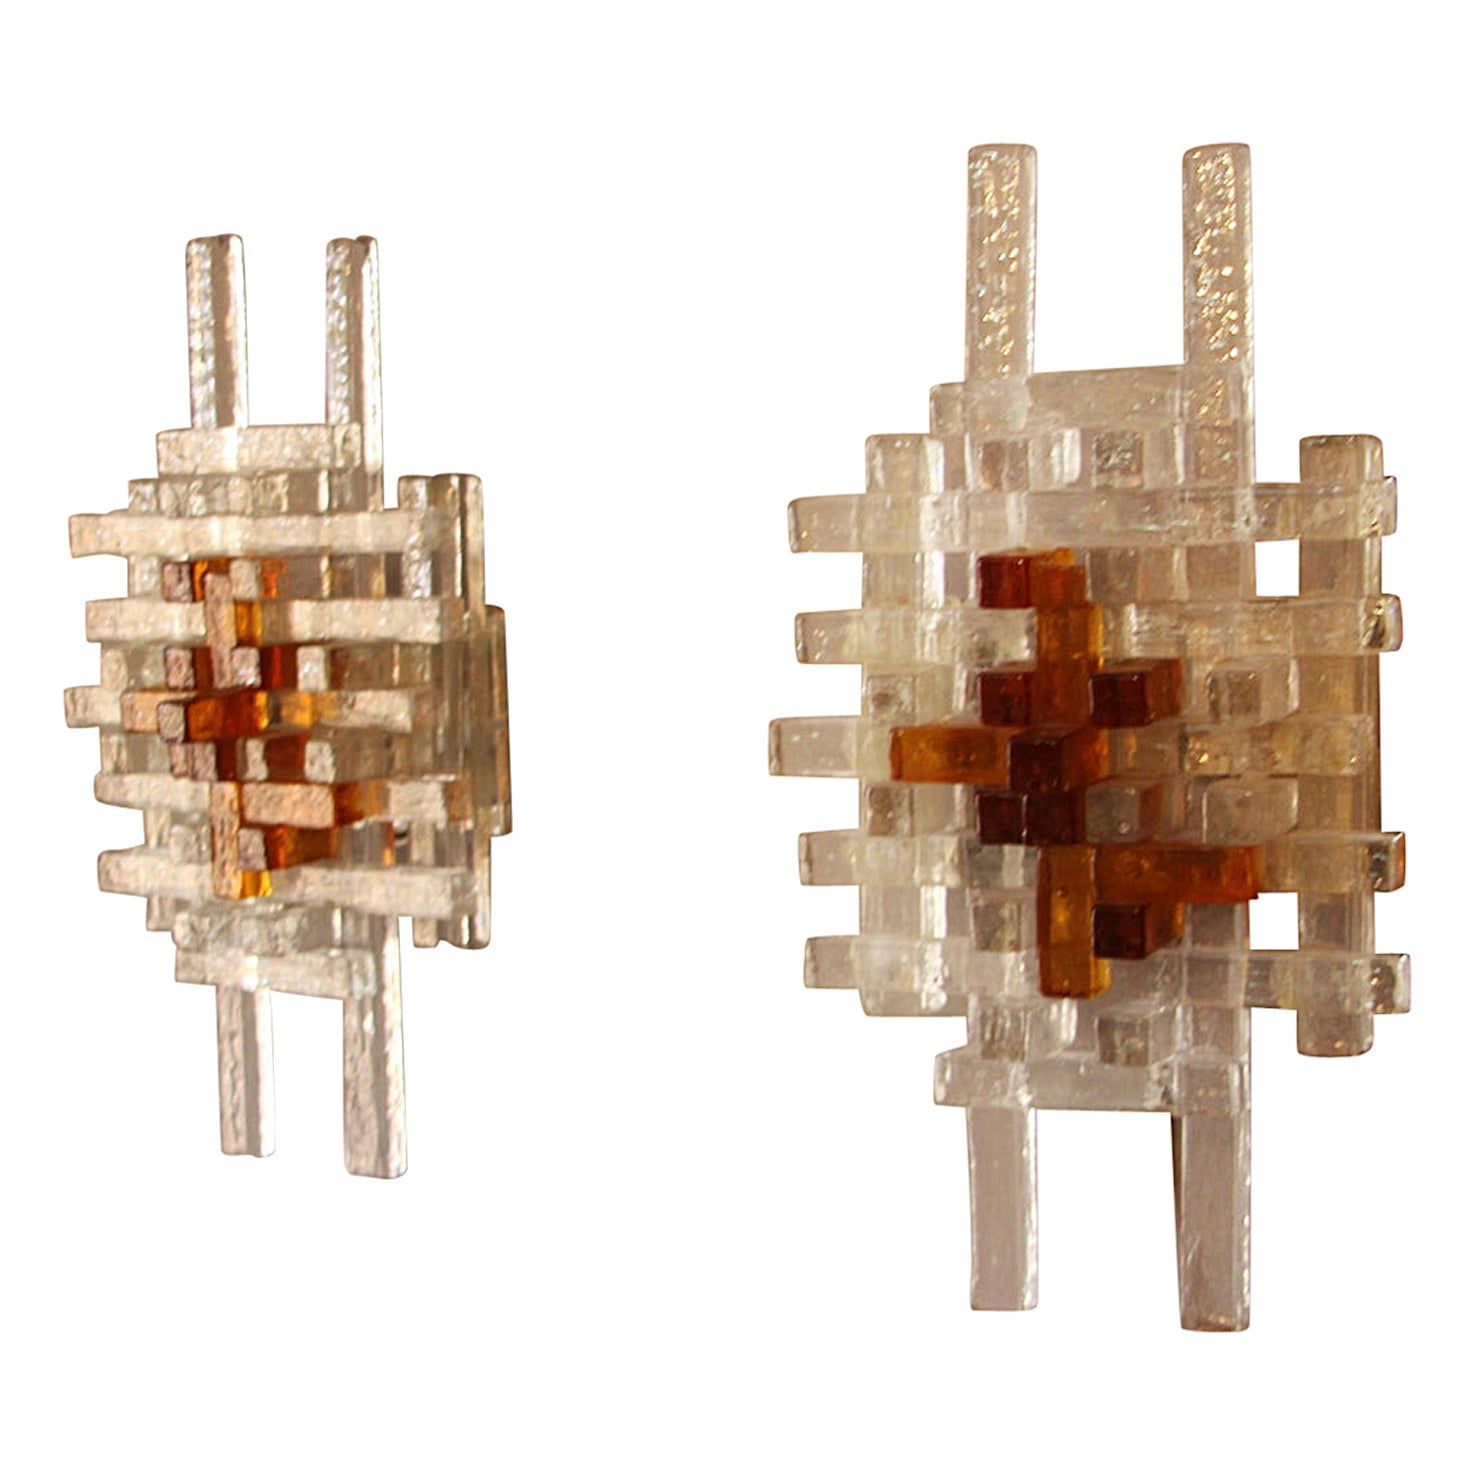 Pair of Mid-Century Modern Wall Lights by Albano Poli for Poliarte